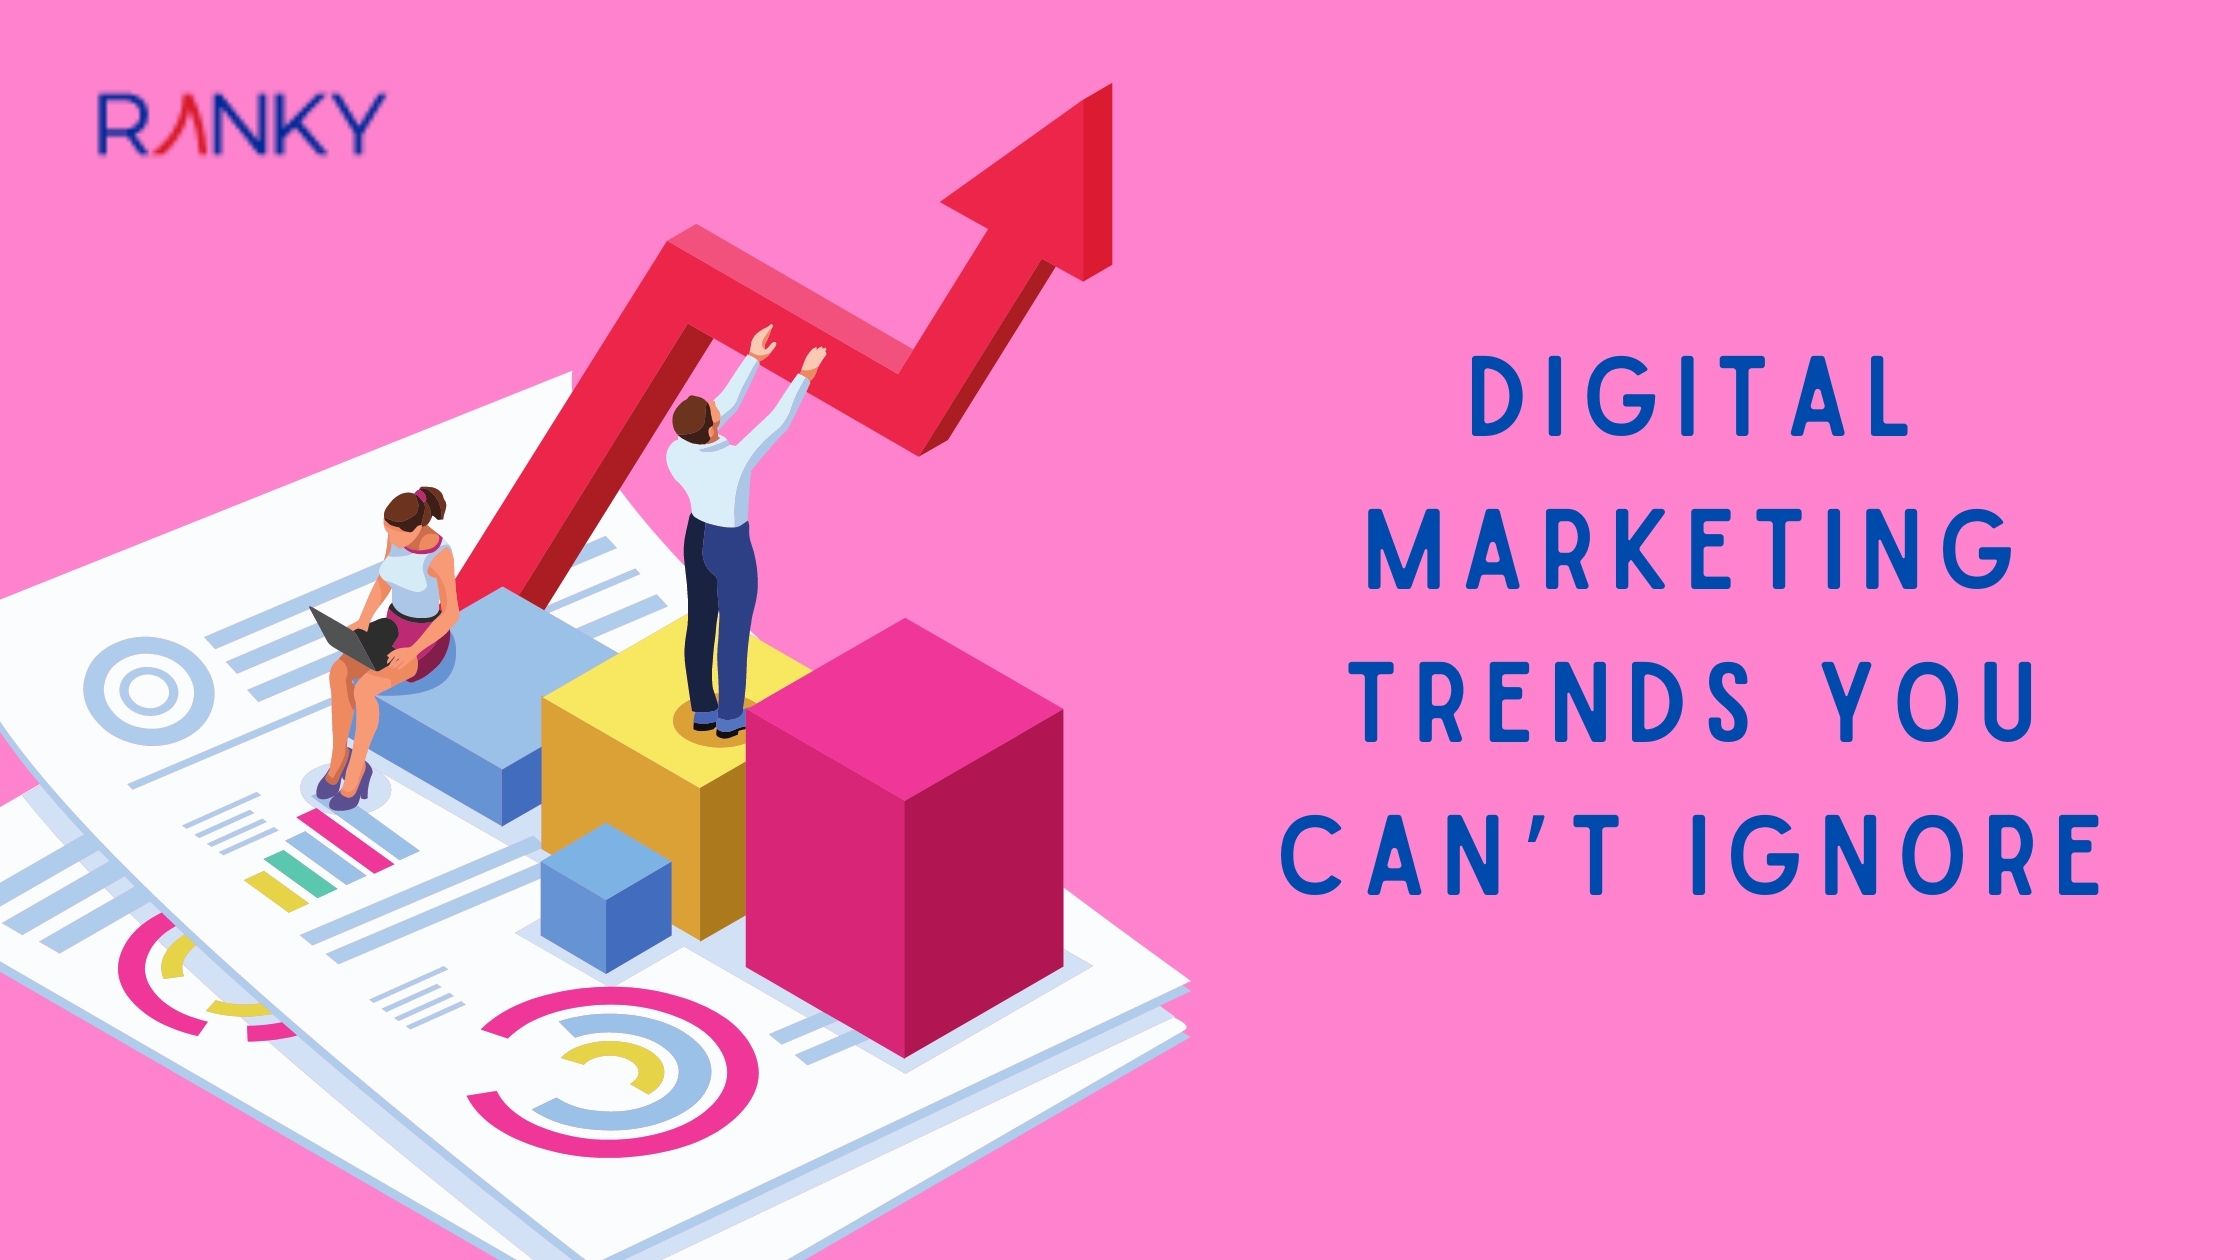 5 Digital Marketing Trends You Can't Ignore